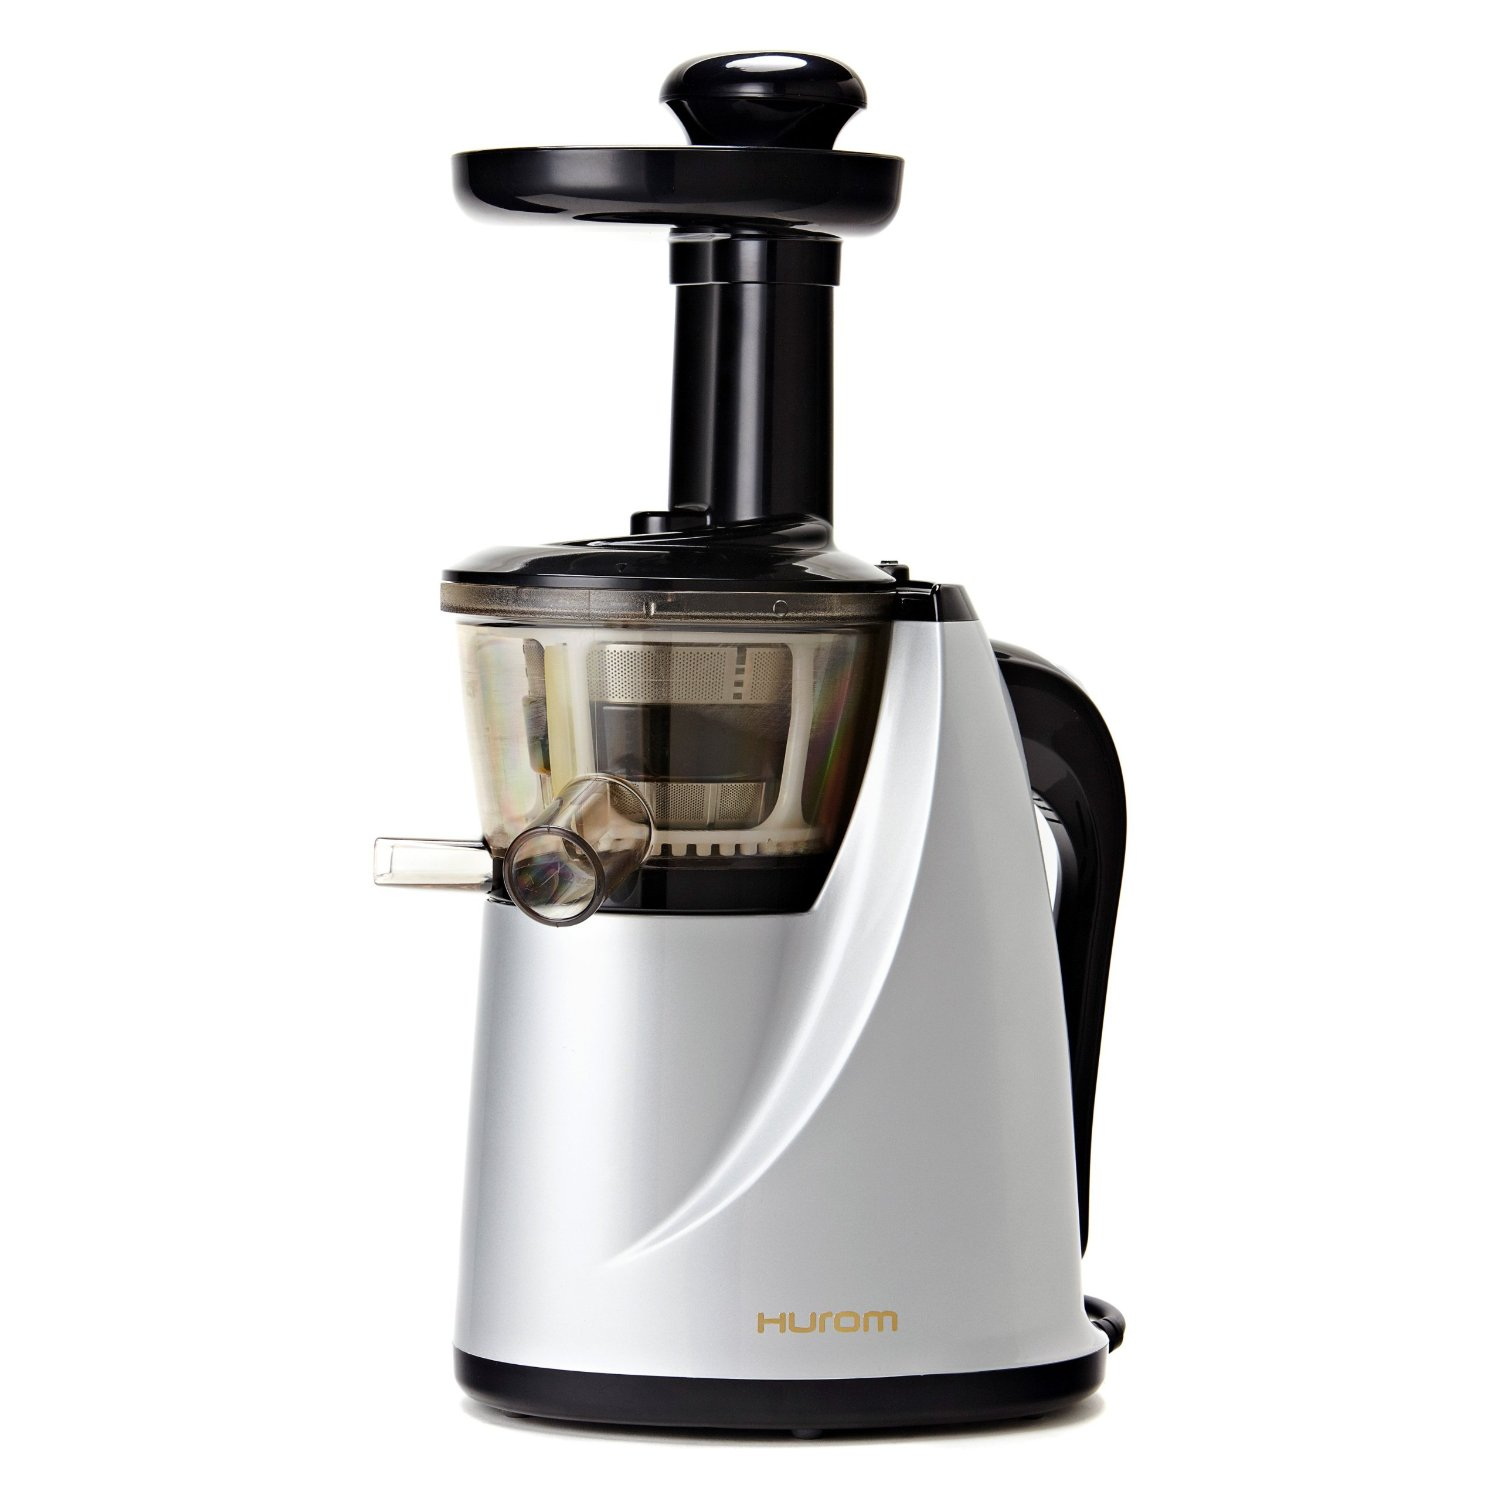 Slow Juicer Or Fast Juicer : Hurom HU-100 Masticating Slow Juicer Review - Best Cold Press Juicers